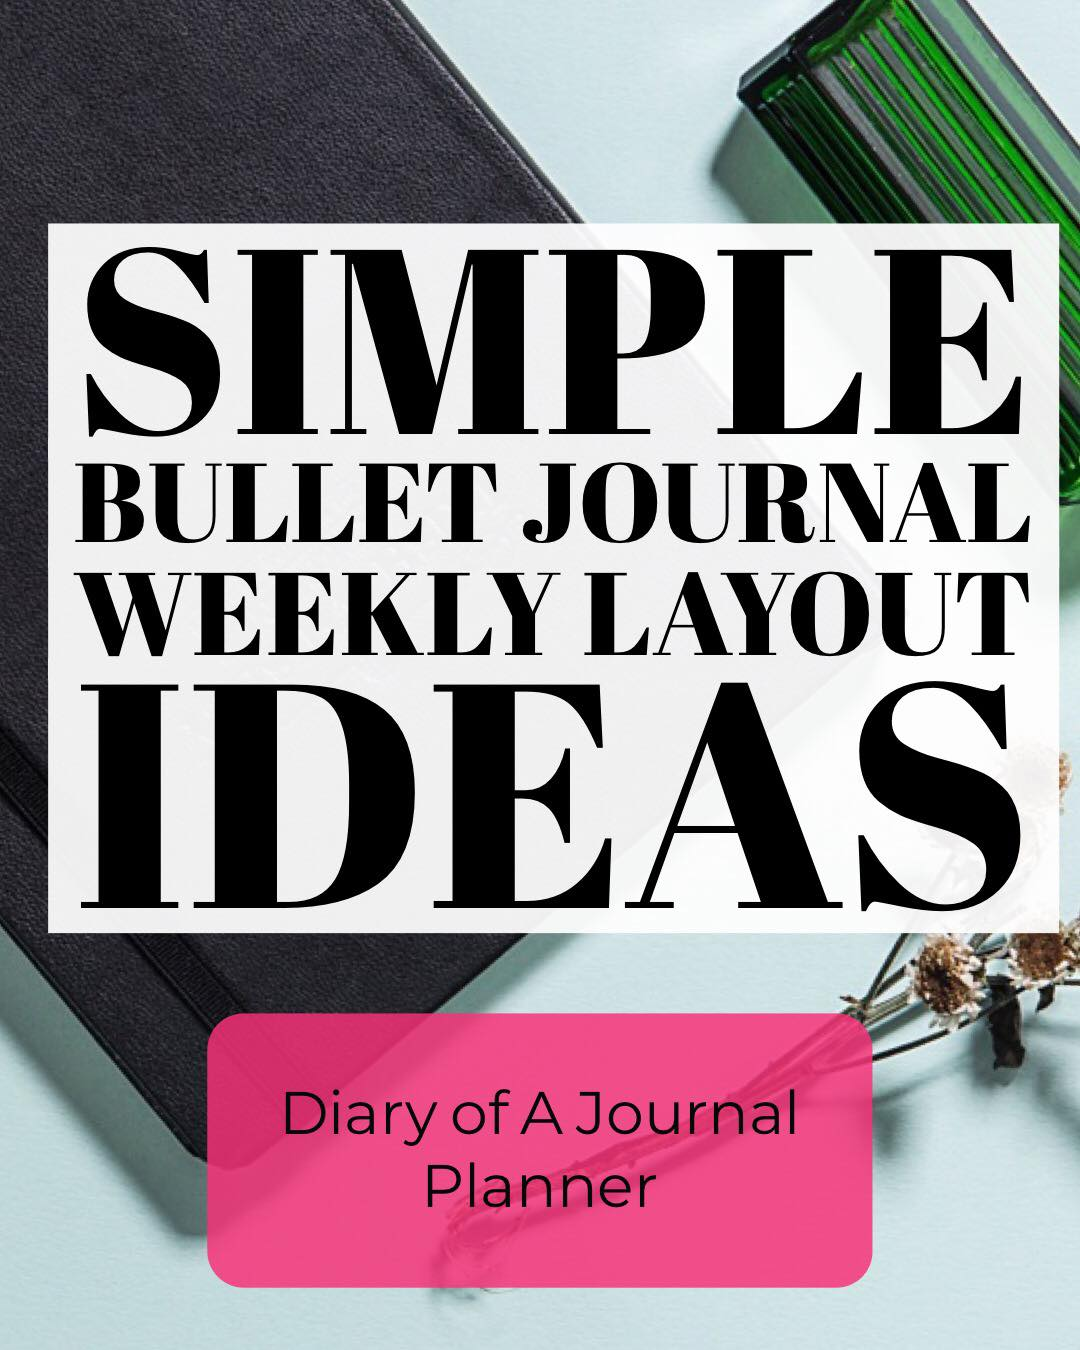 Easy Weekly Layout Ideas For Bullet Journal.